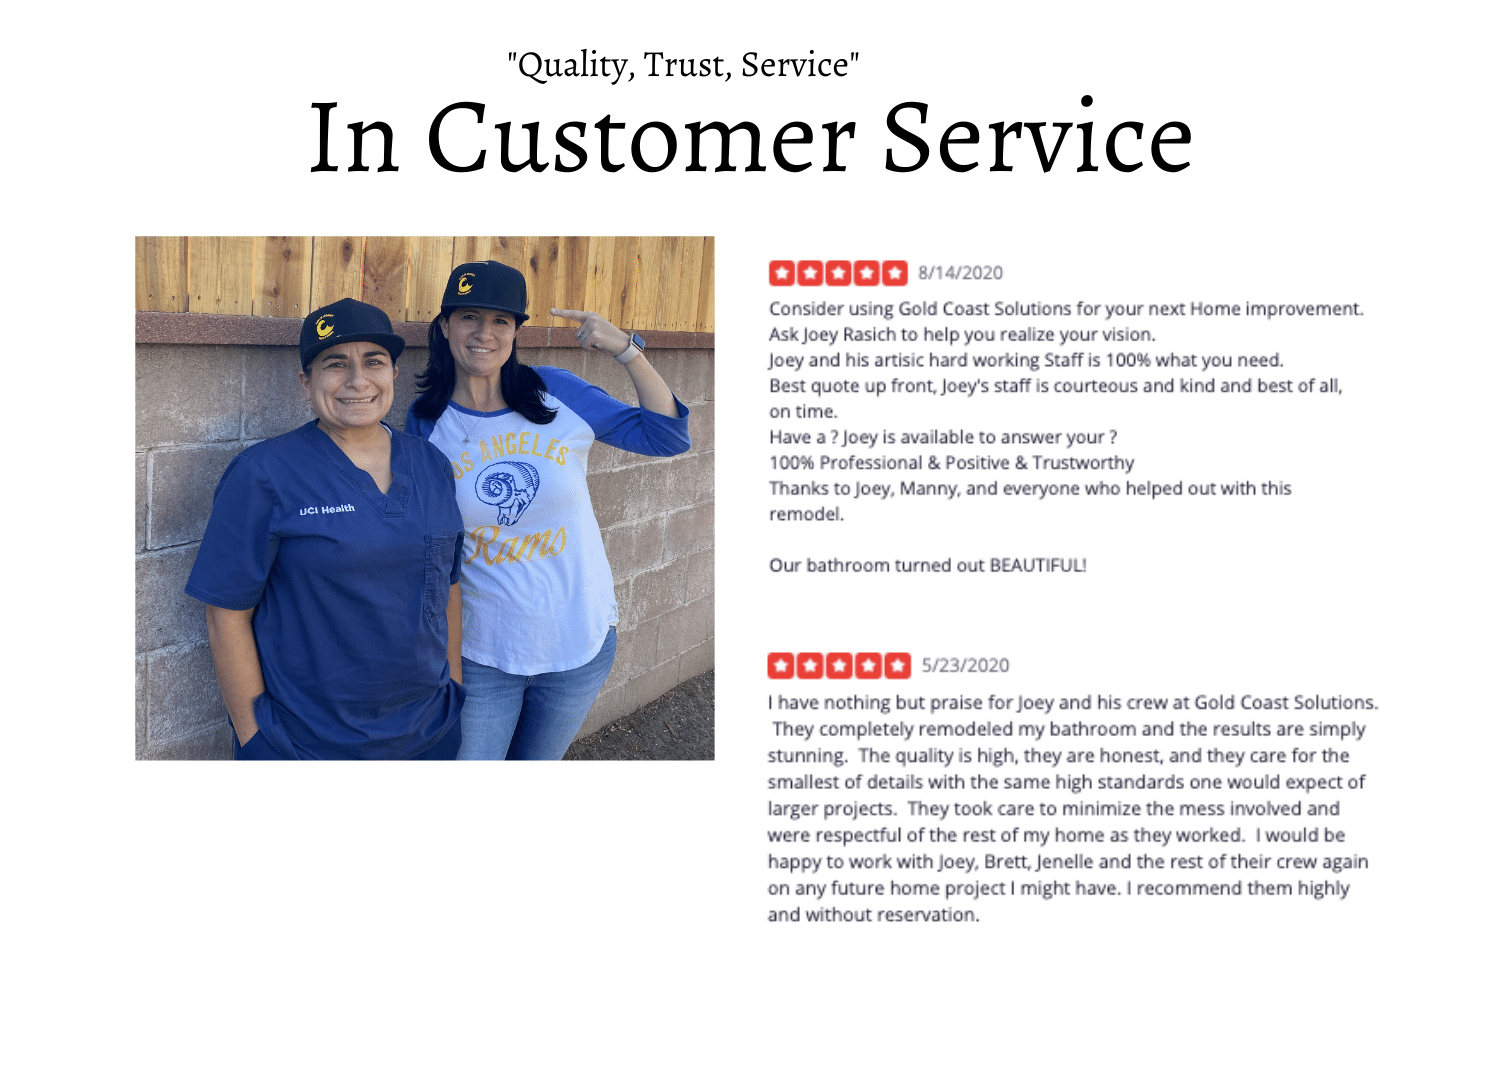 Regularly surveying customers throughout their projects is essential in developing rapport to grow a brand. The brand belongs to the customers as well. To foster messaging, lots of shirts, hats, and praise were given out. Reviews were requested after a positive survey, and often set the stage for a great customer testimonial for the YouTube channel